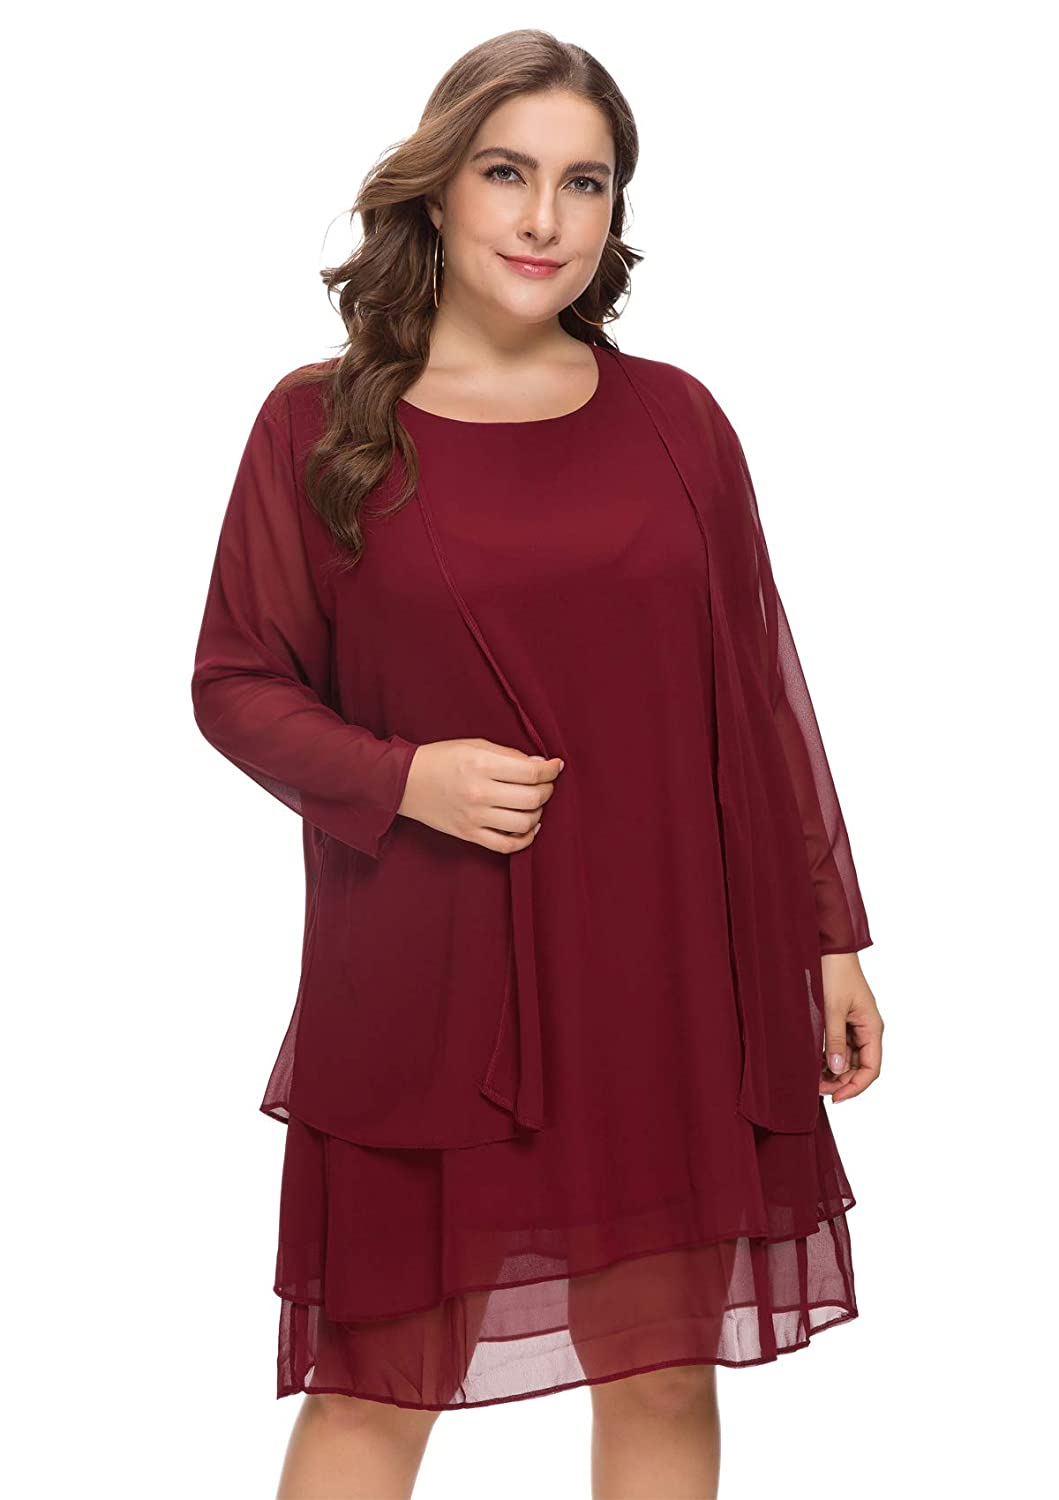 MERRYA Women's Plus Size Business Chiffon Jacket Mother of the Bride Dress Suit